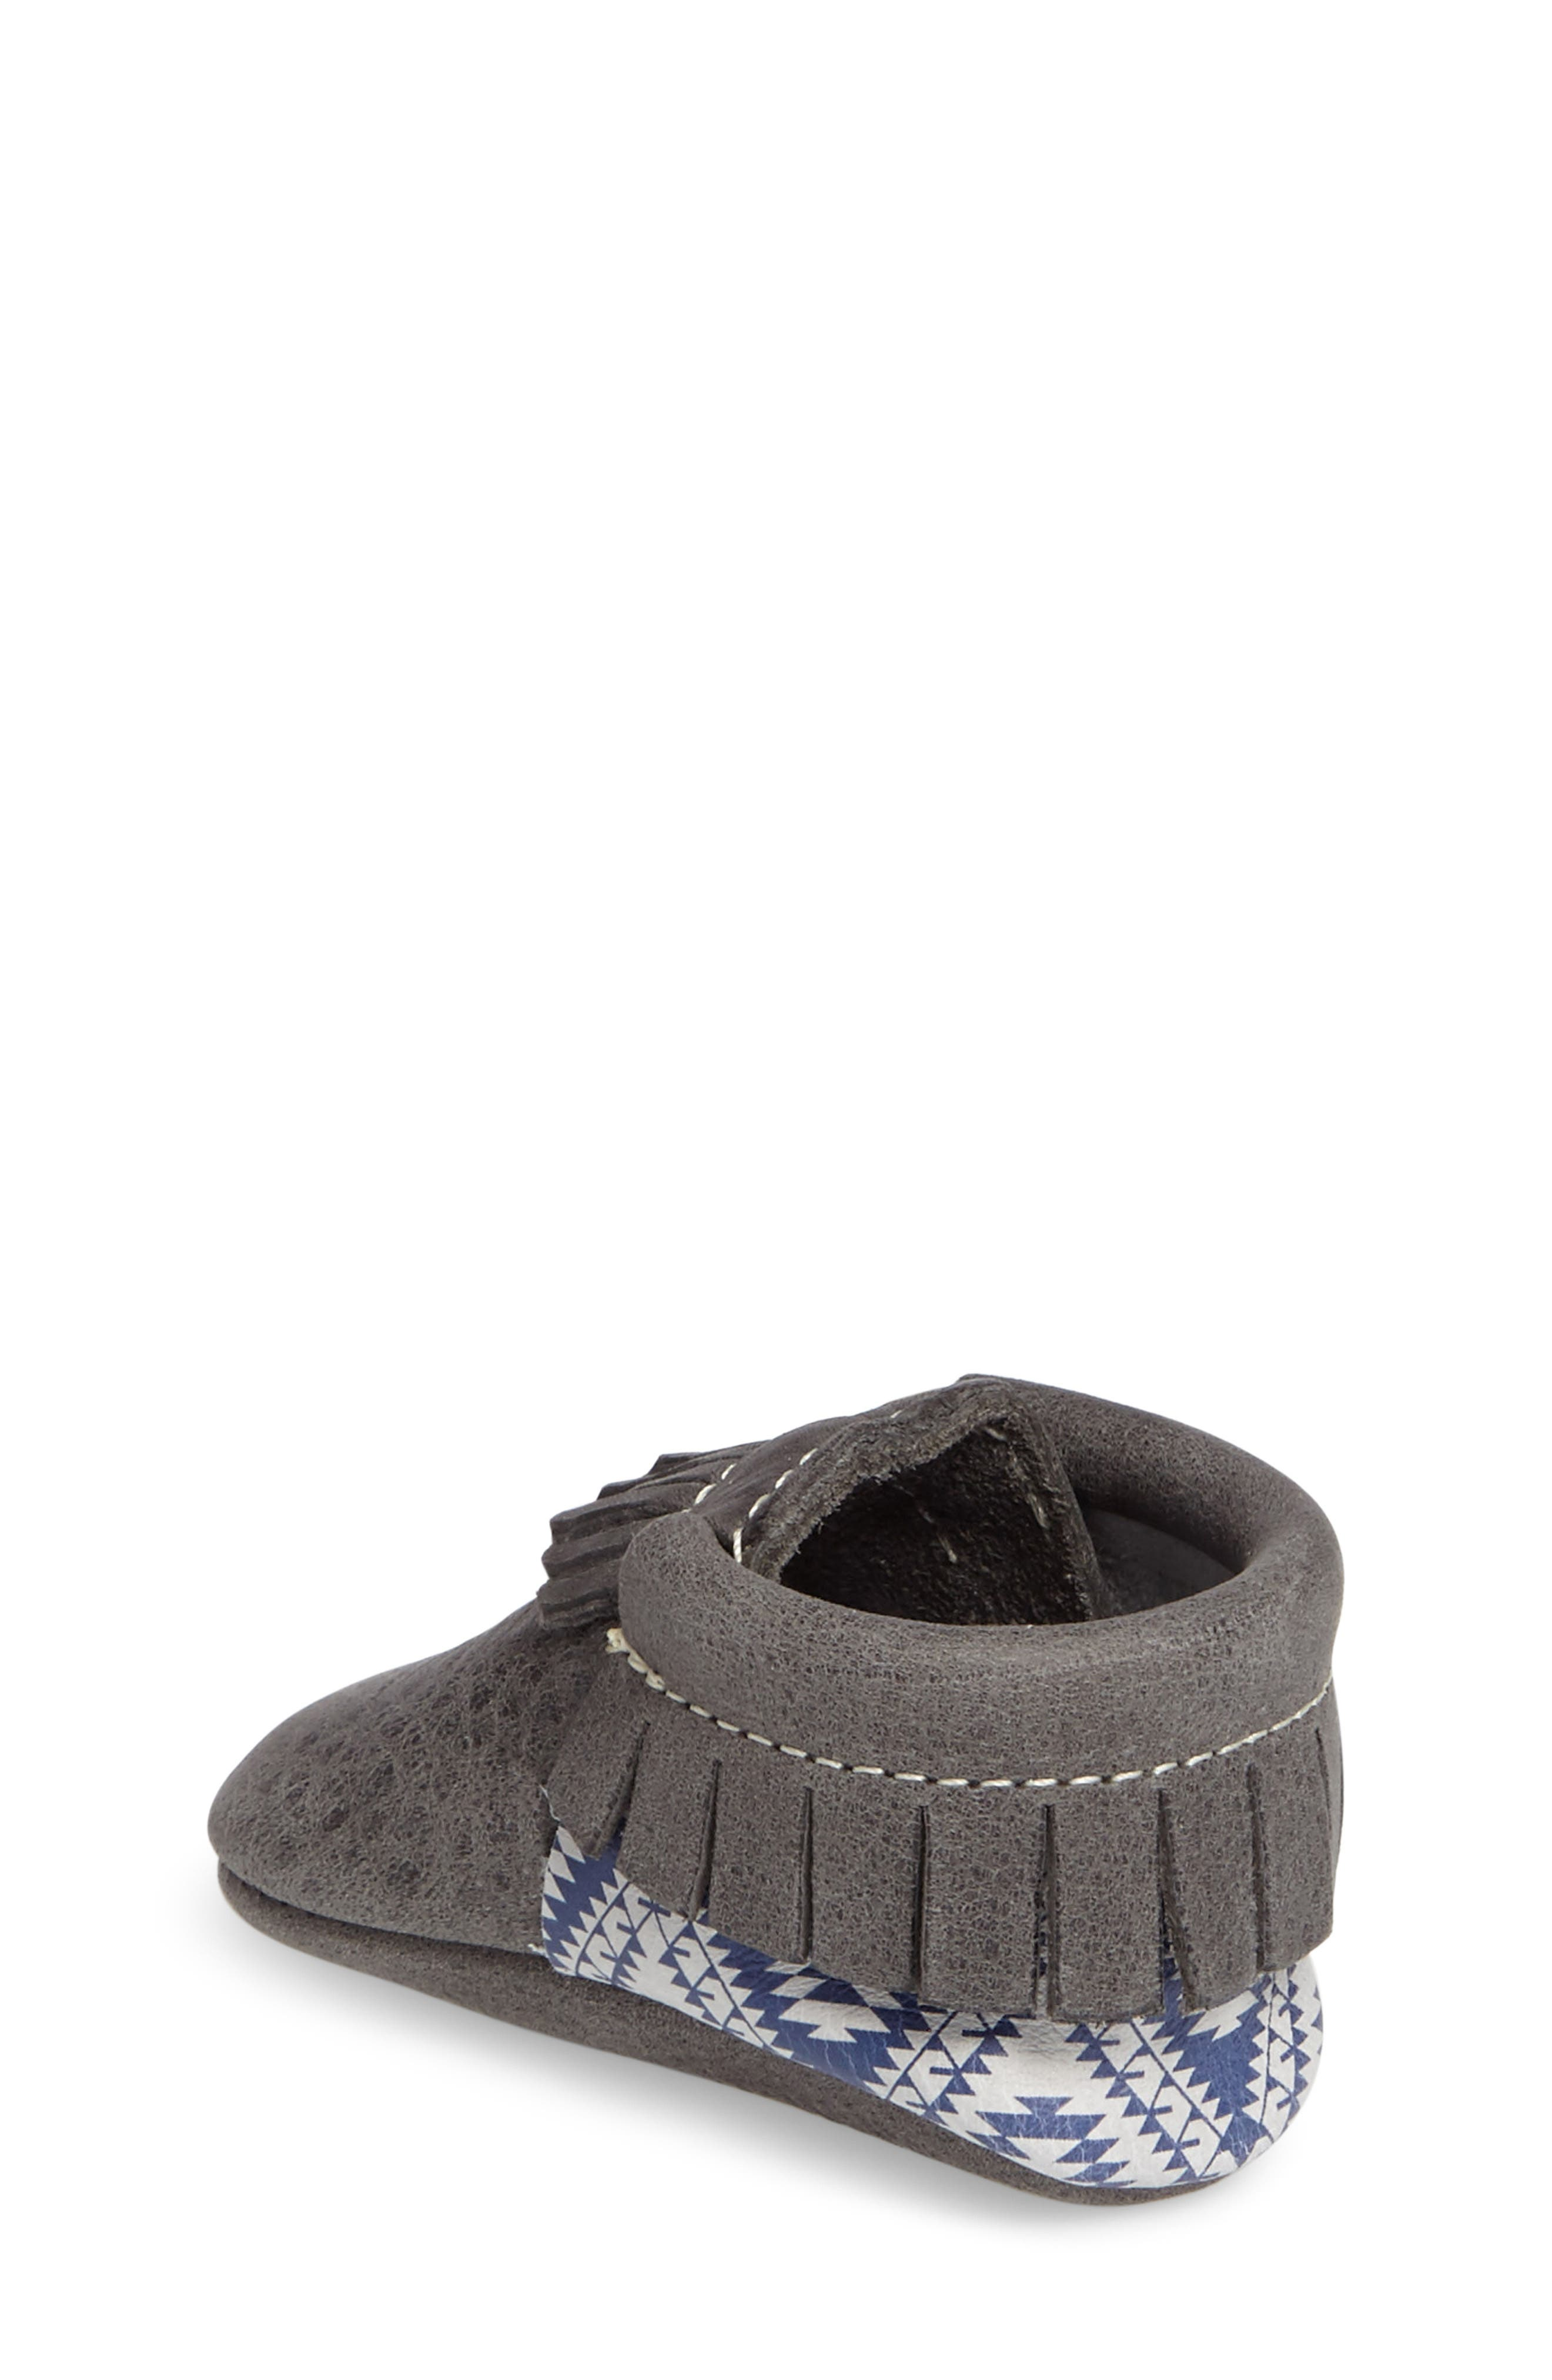 Leather Moccasin,                             Alternate thumbnail 2, color,                             021